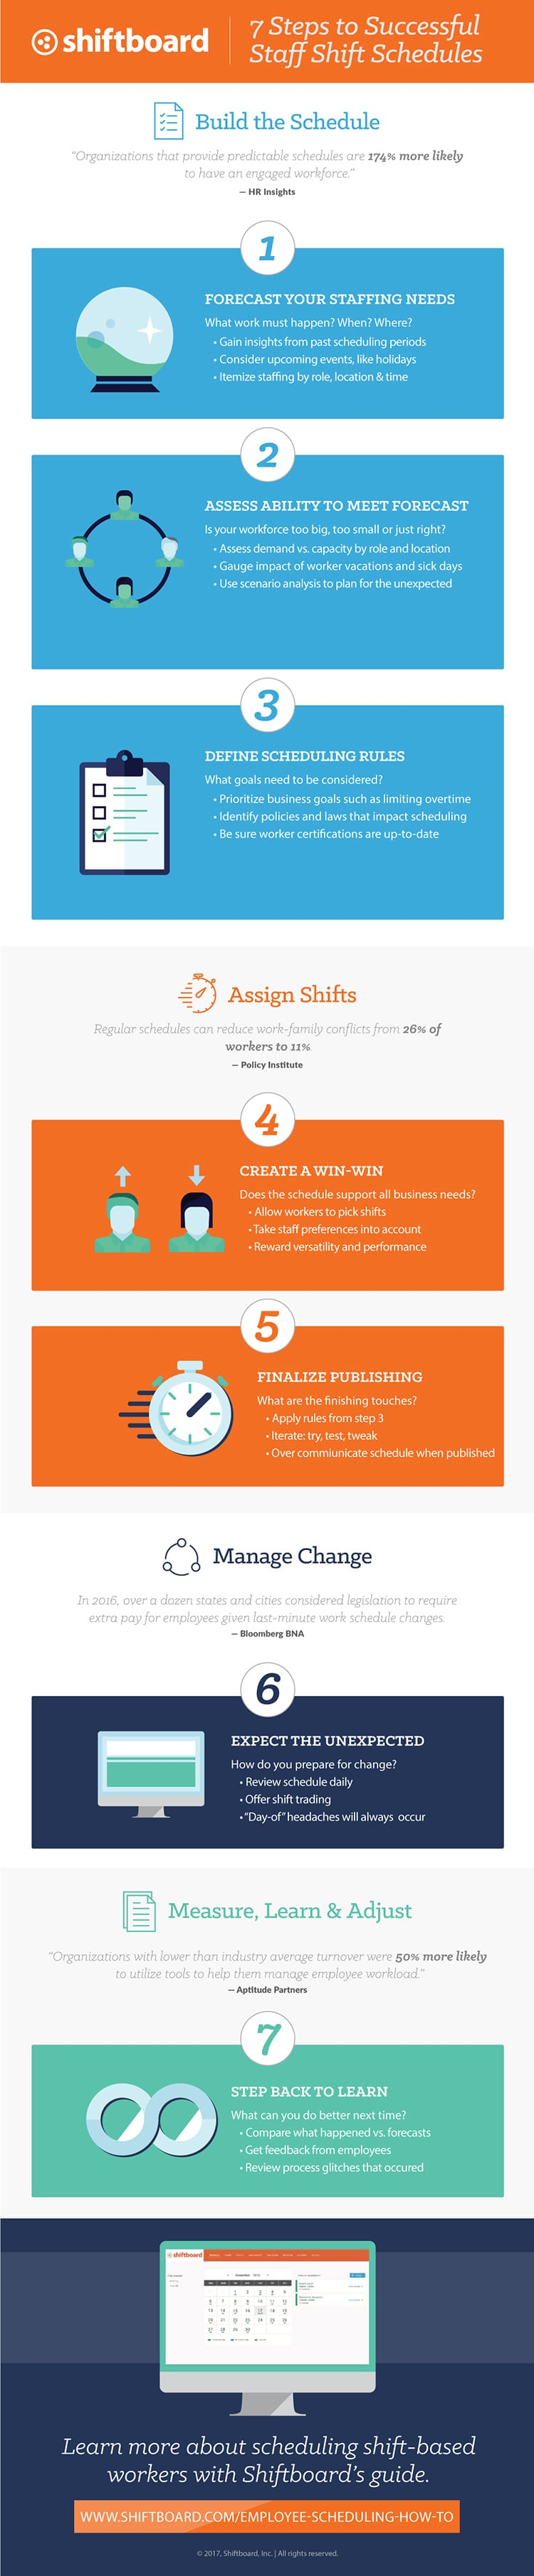 Hourly Staff Scheduling Infographic - 750px